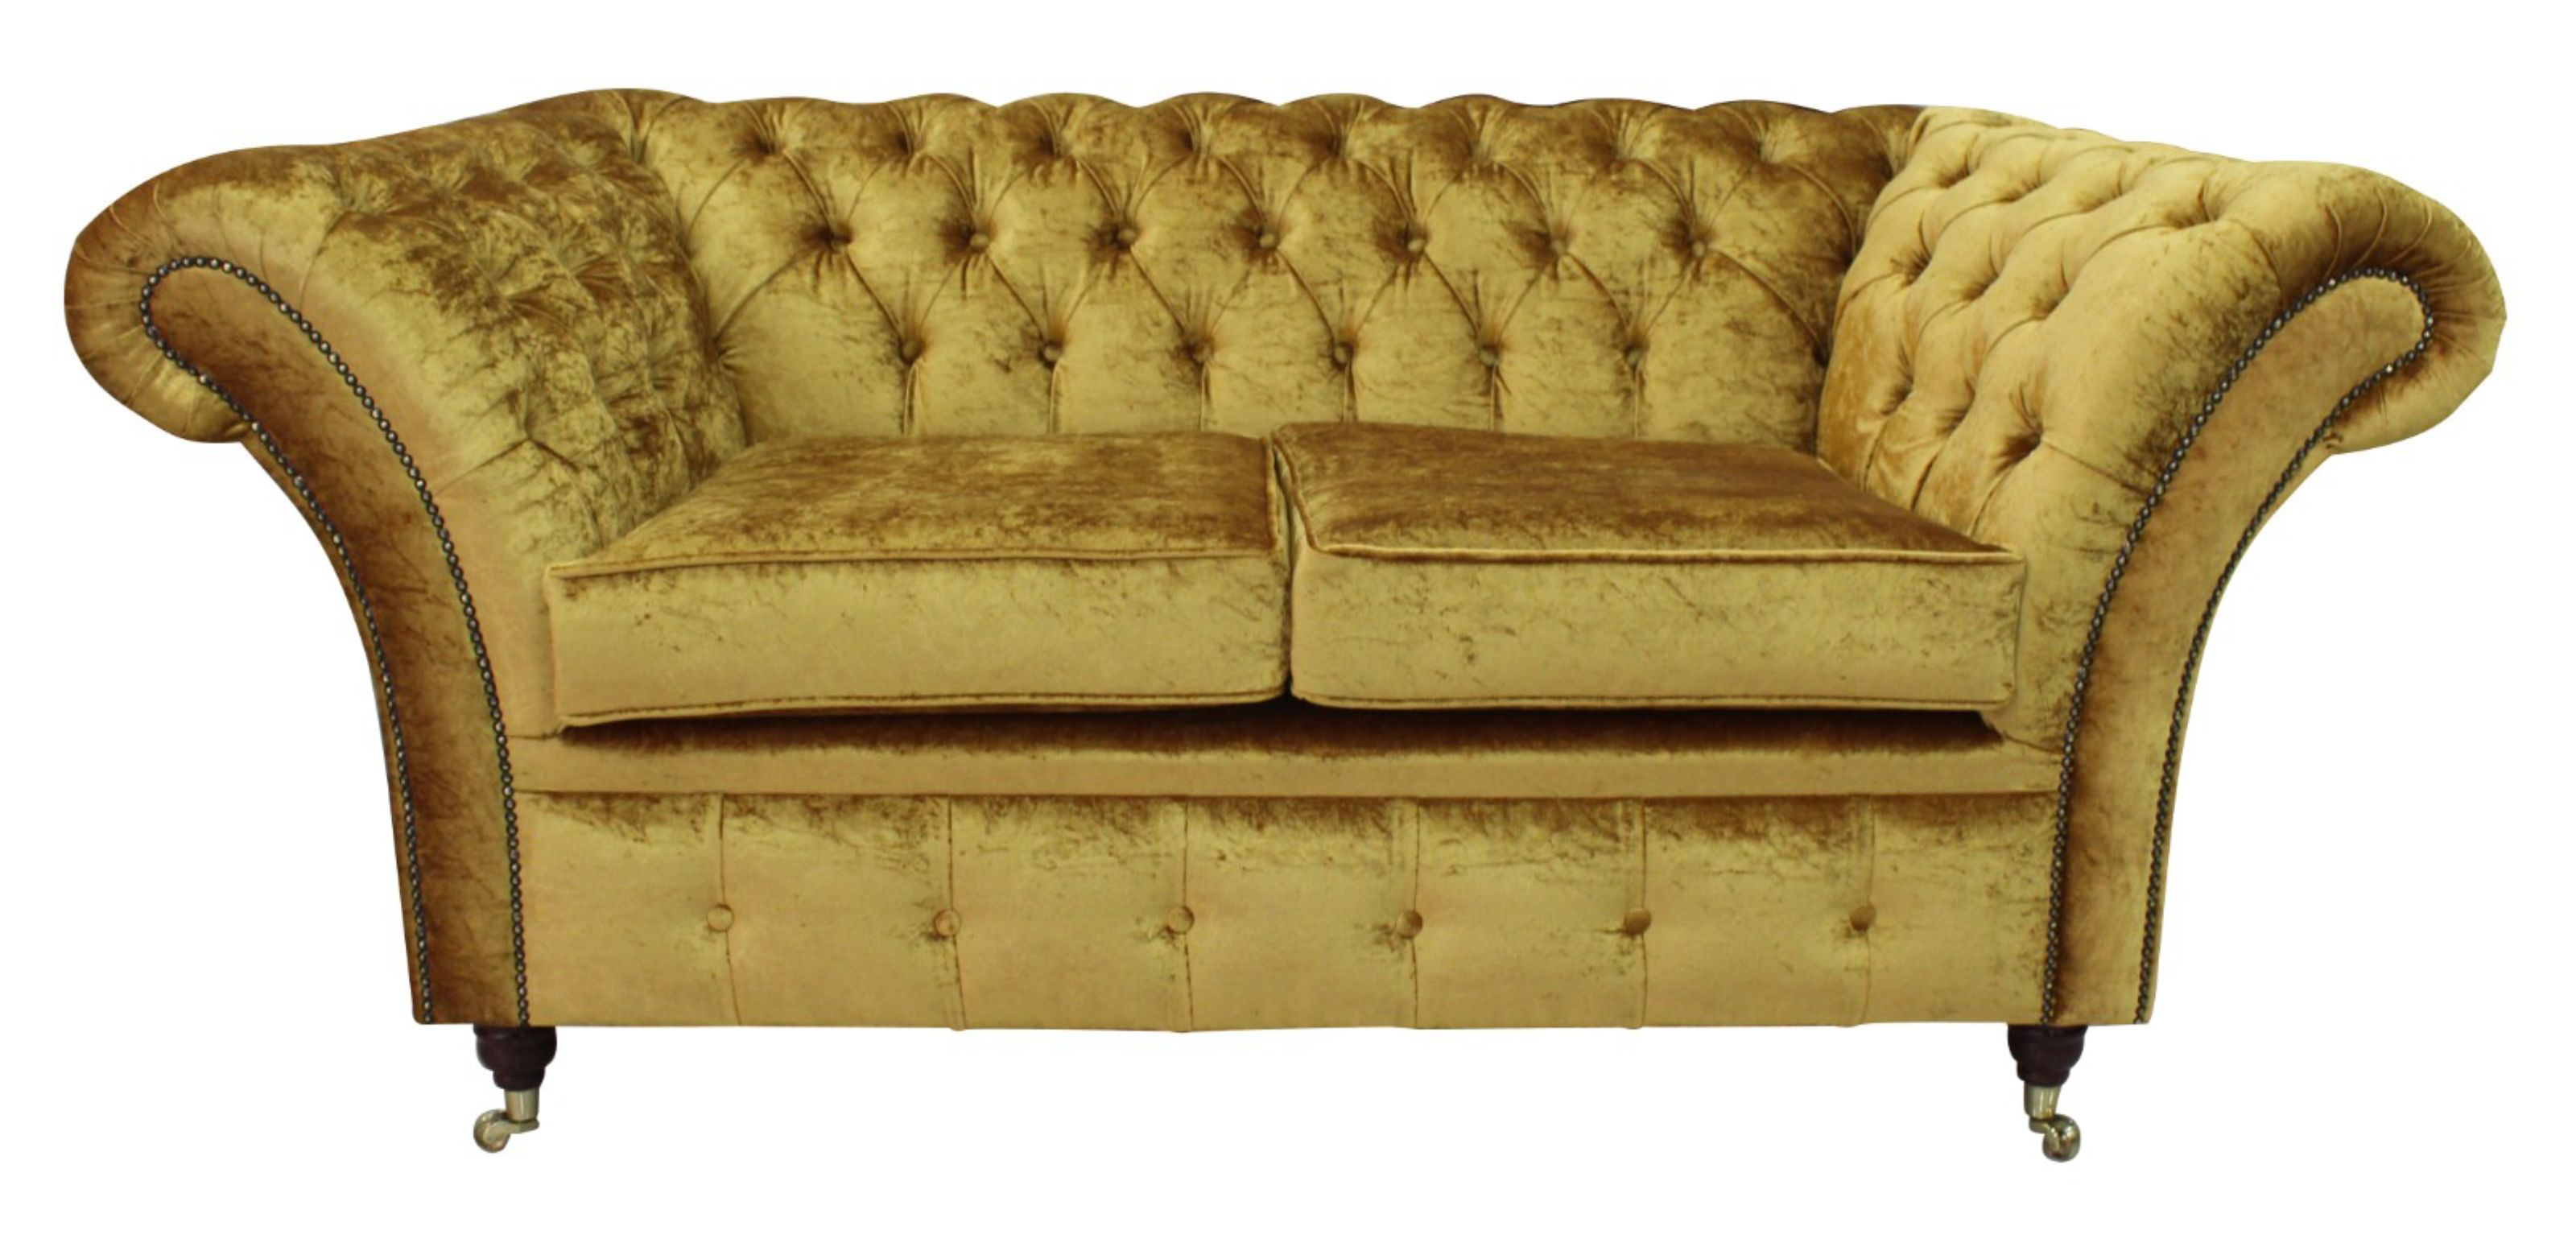 Chesterfield Sofas Quick Delivery Gold Fabric 12 Month Warranty